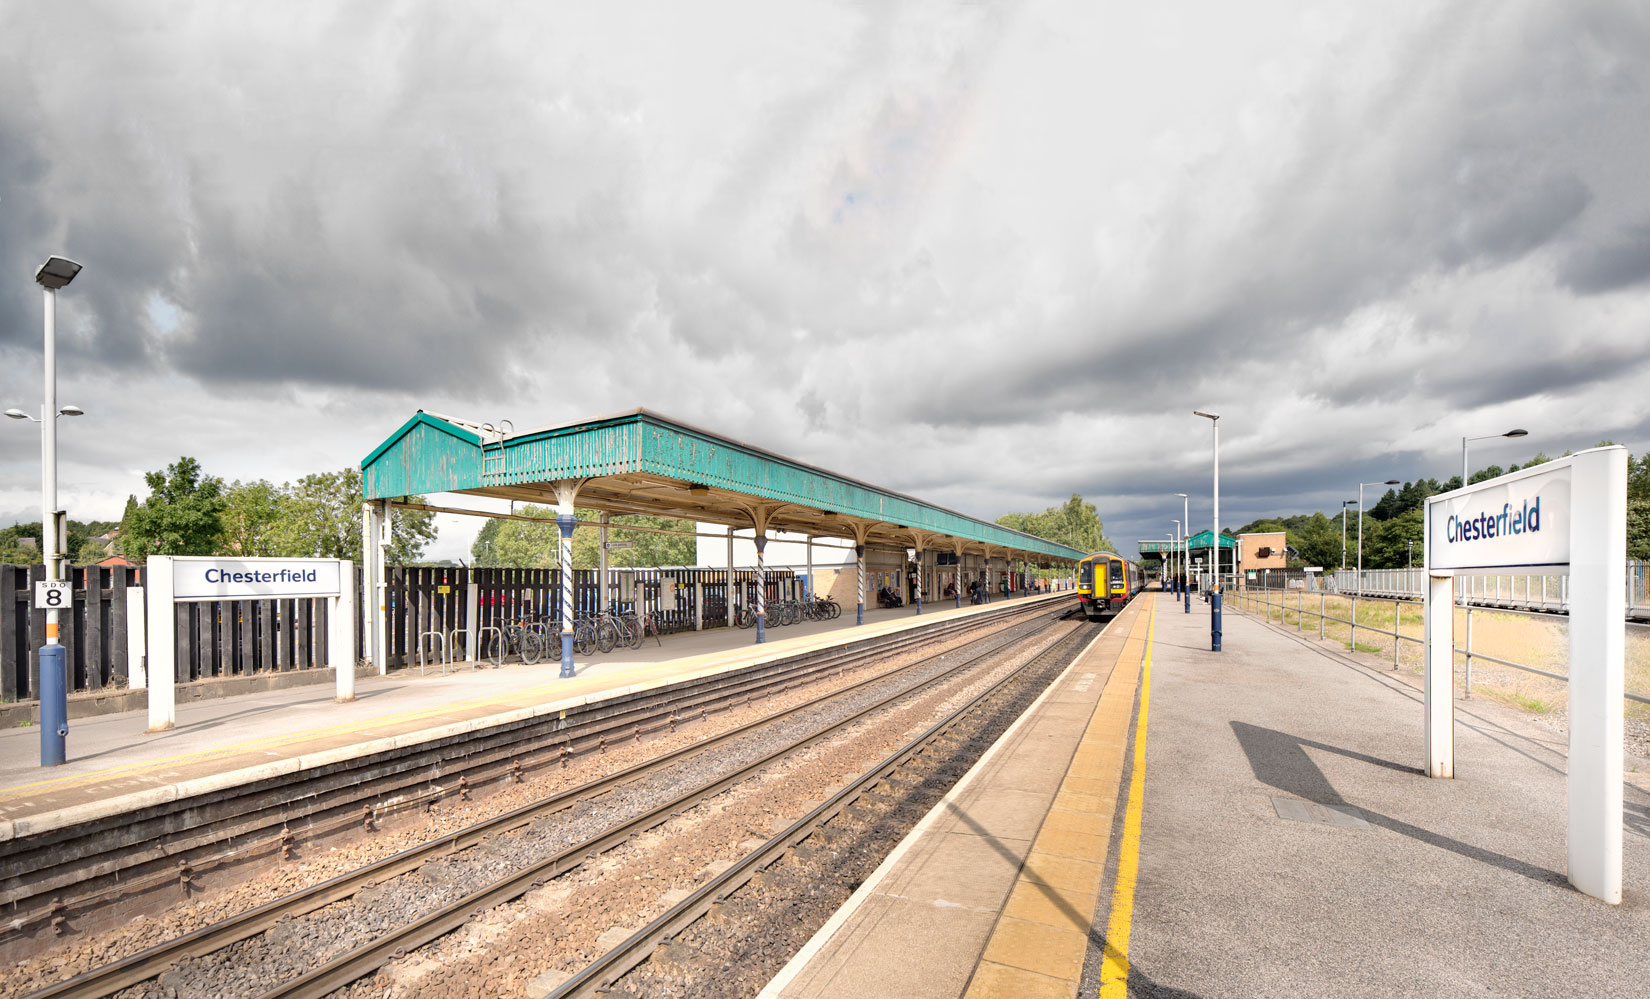 Chesterfield Train Station looking down towards the green roofed platform with train coming towards you